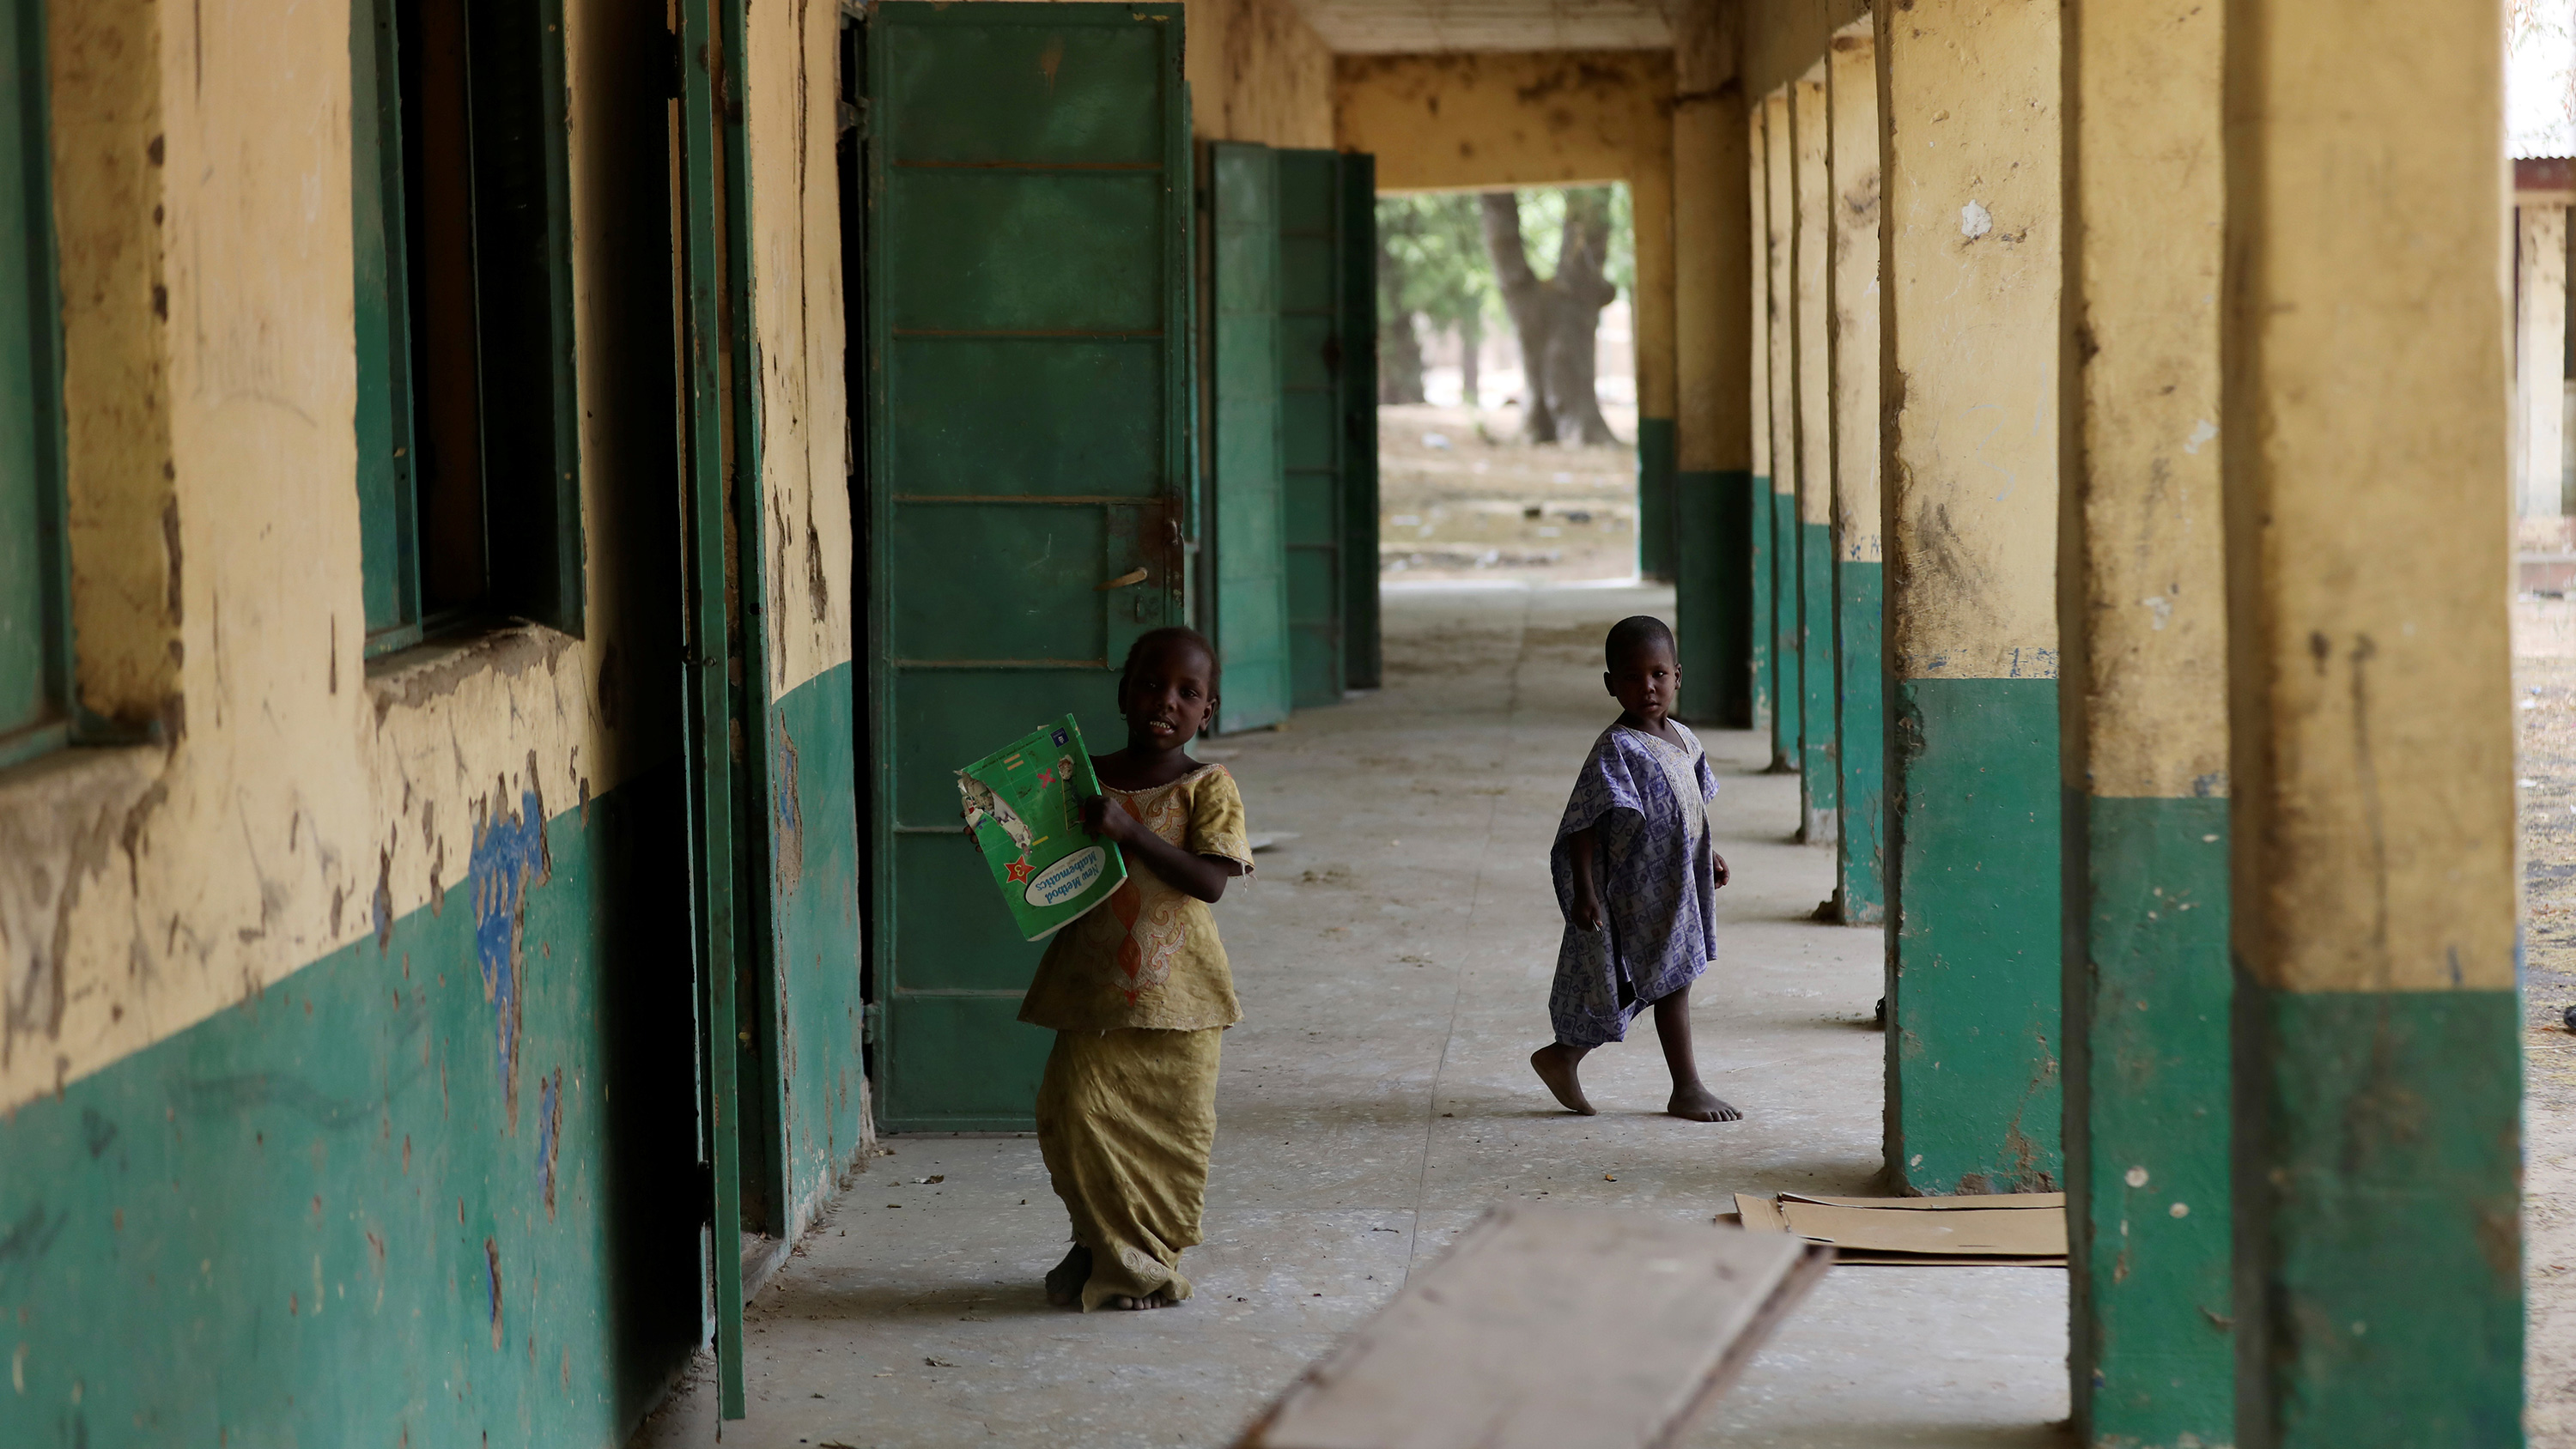 Picture shows two children walking along an outdoor corridor at a school with large cinder block columns painted green.